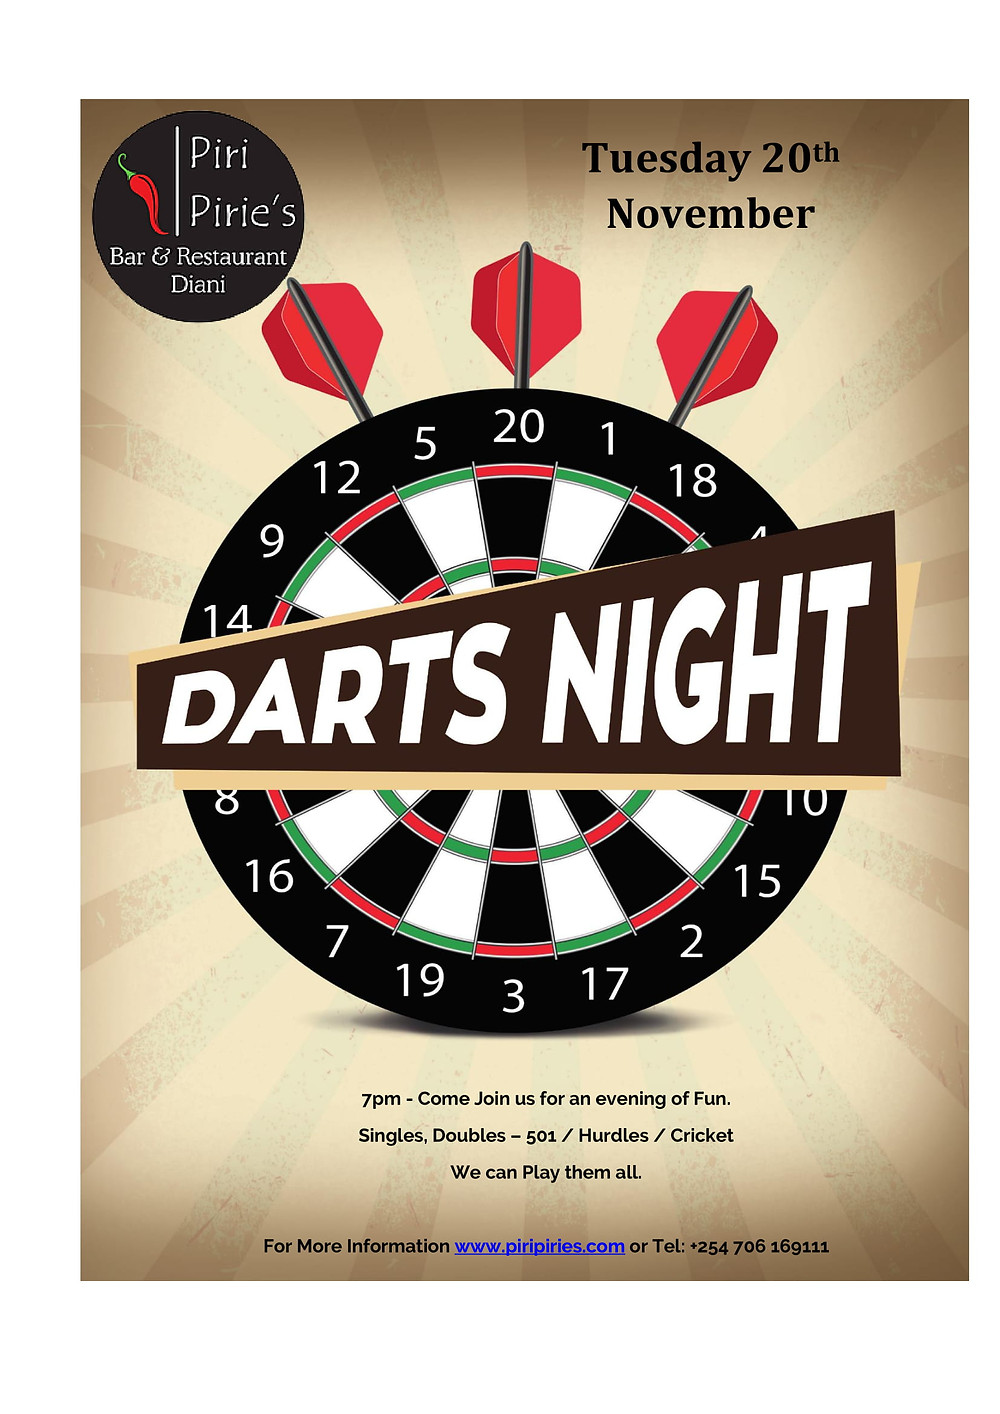 Darts nights at Piri Pirie's 20th November 7pm